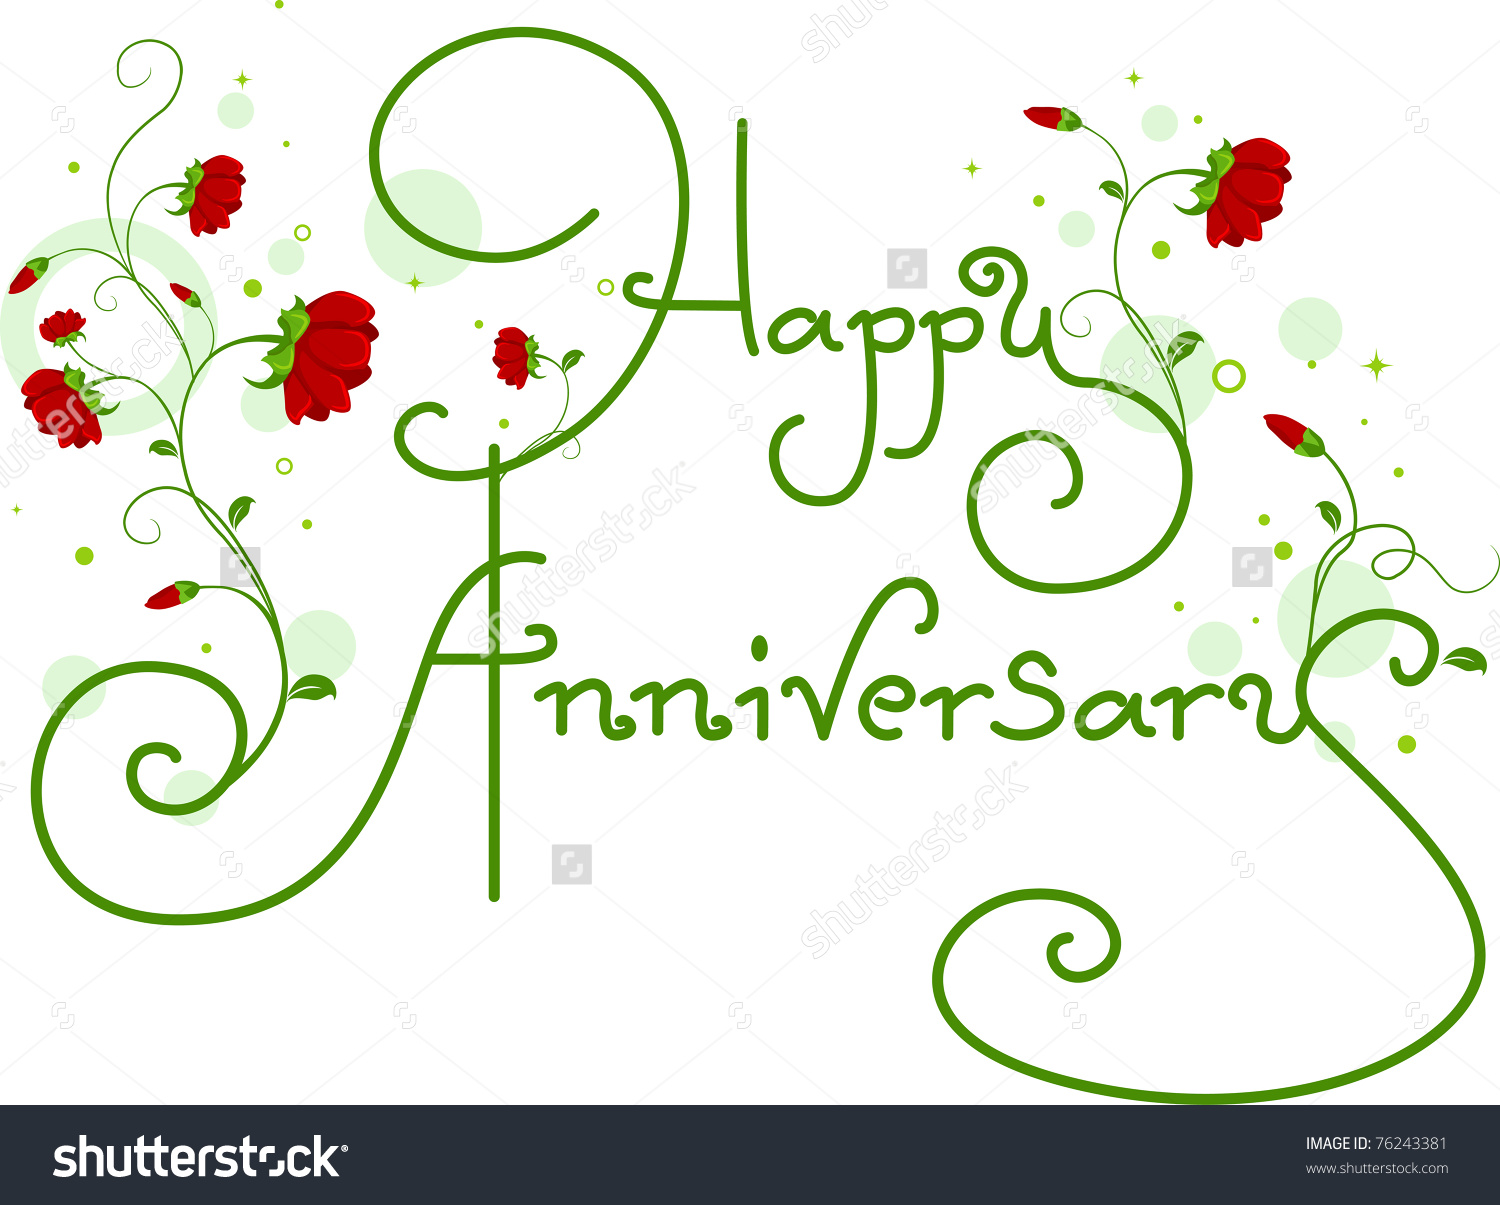 Leaves background clipart happy anniversary jpg transparent Text Featuring Words Happy Anniversary Stock Vector 76243381 ... jpg transparent